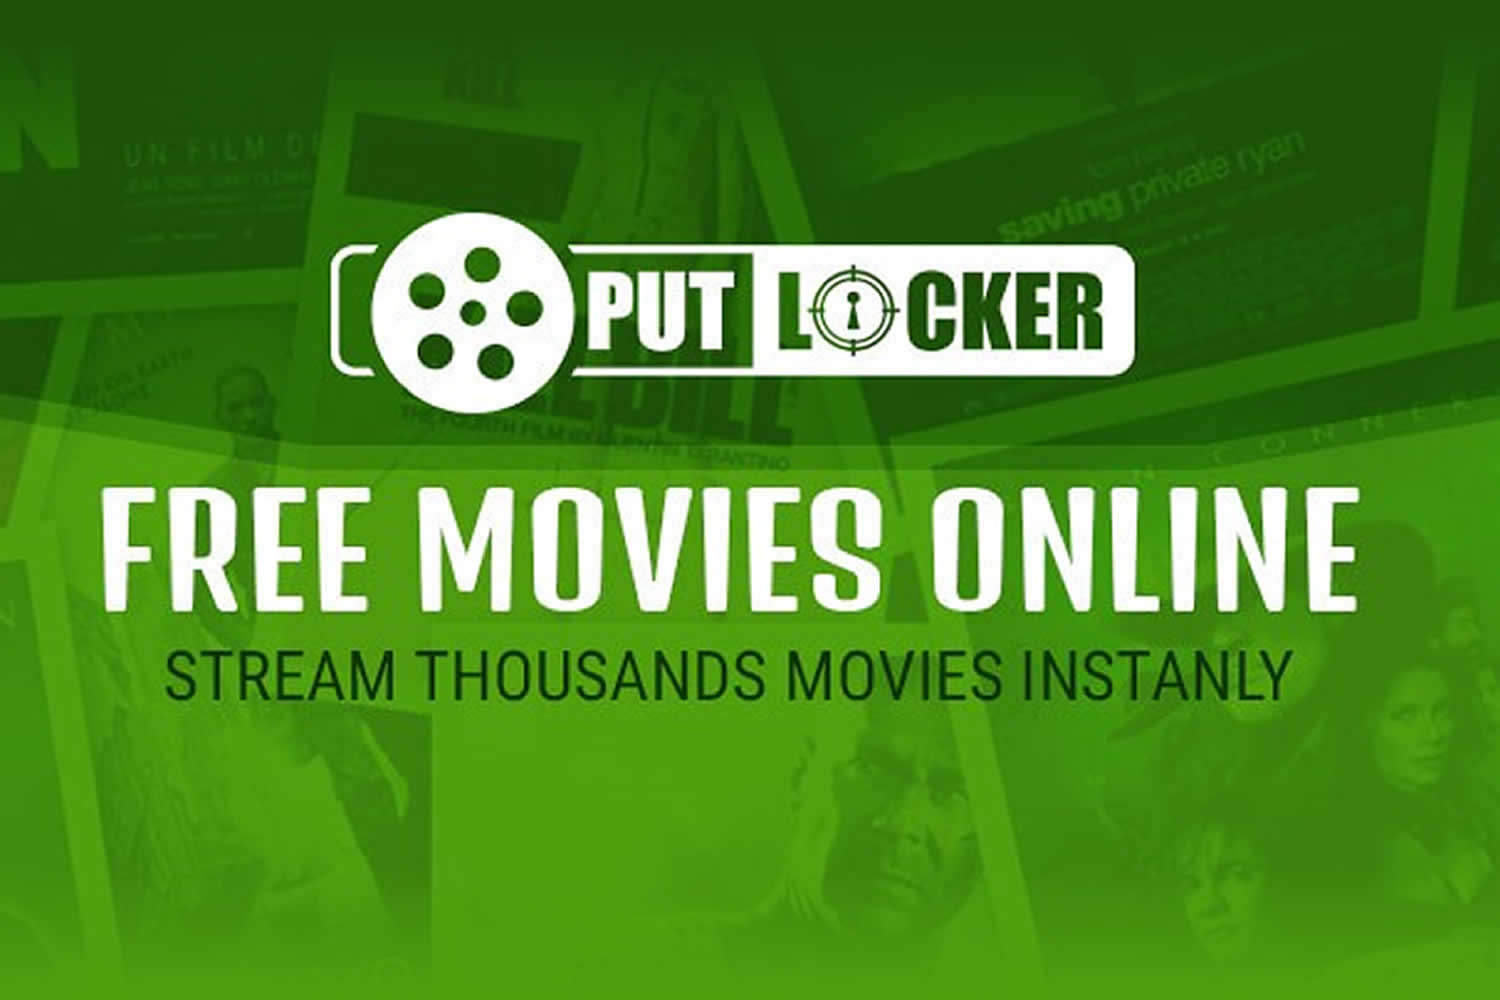 Watch The City Putlocker Movies